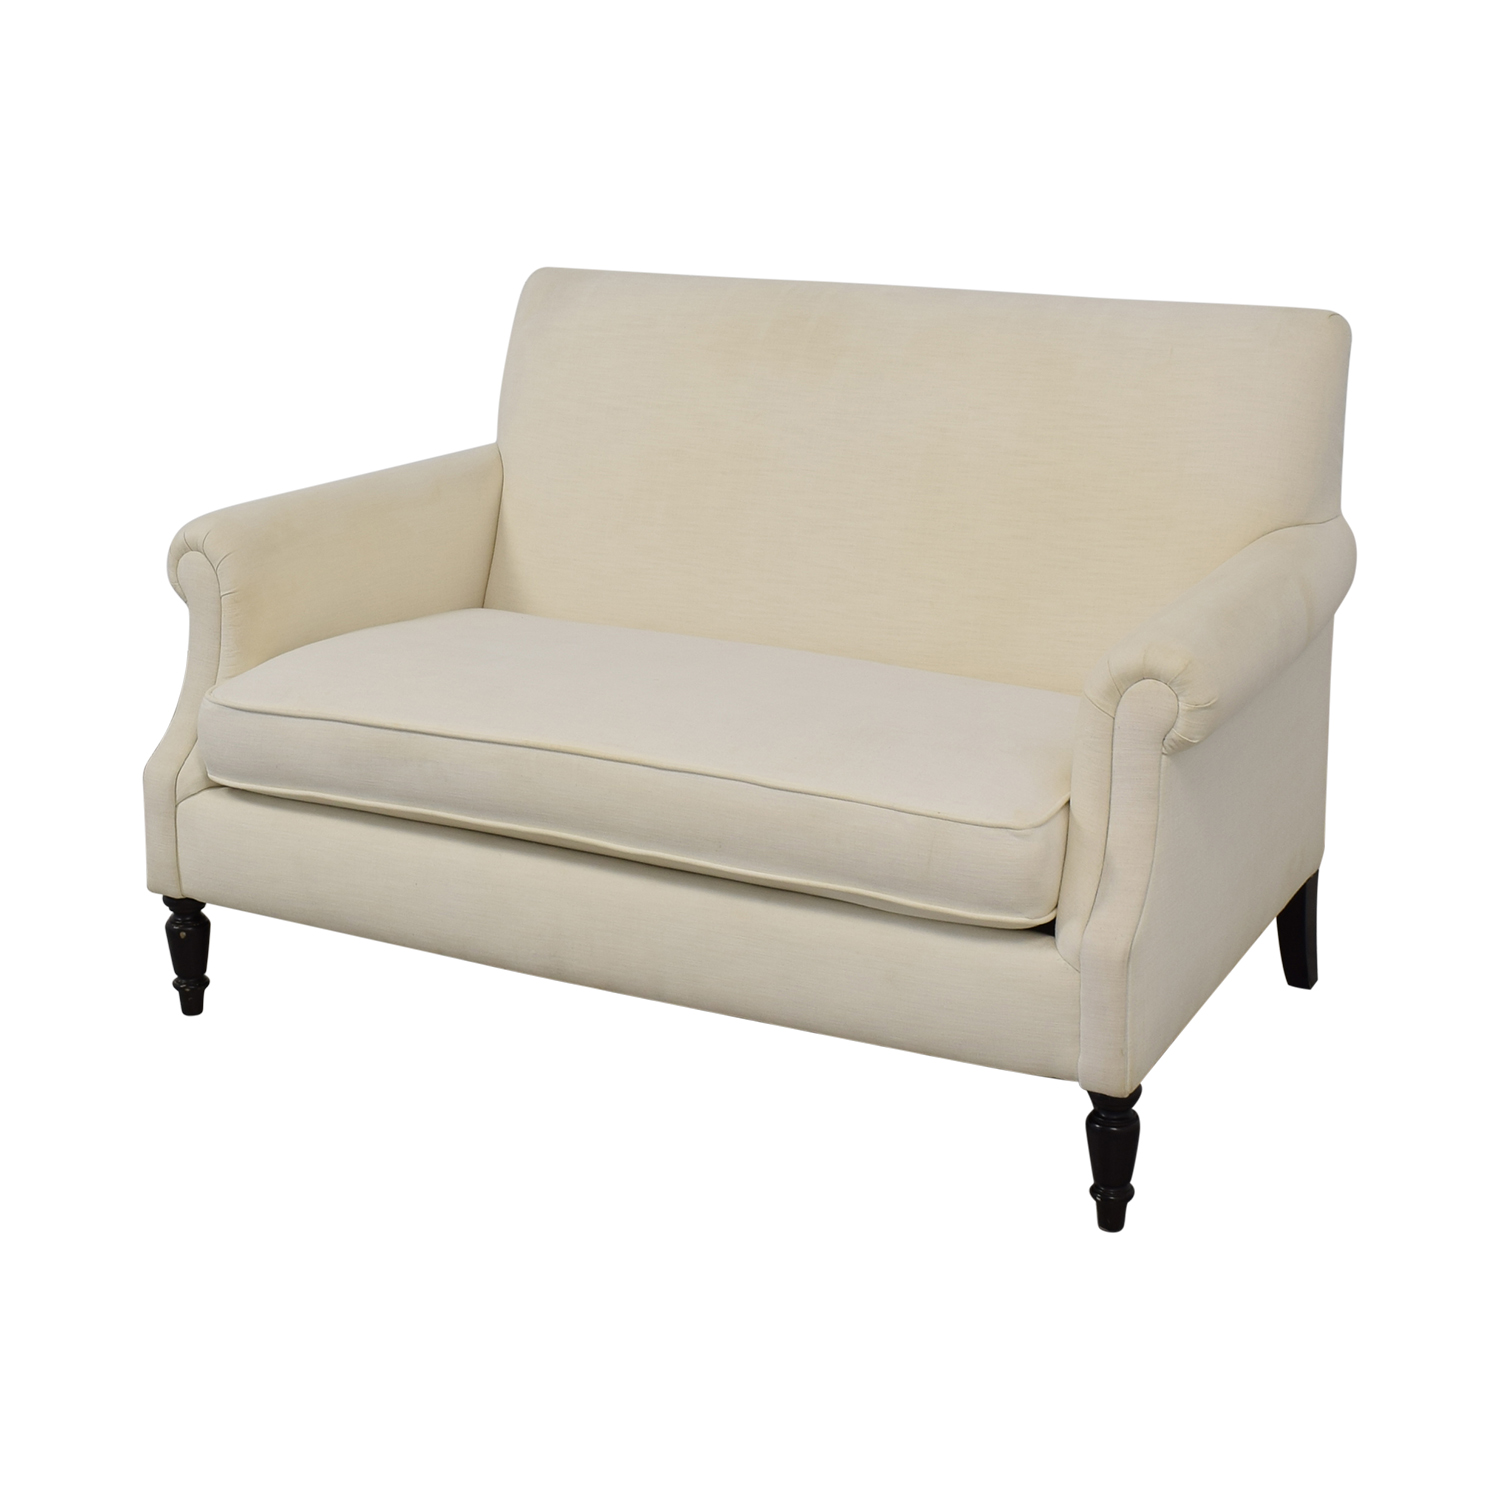 Crate & Barrel Crate & Barrel Roll Arm Loveseat for sale